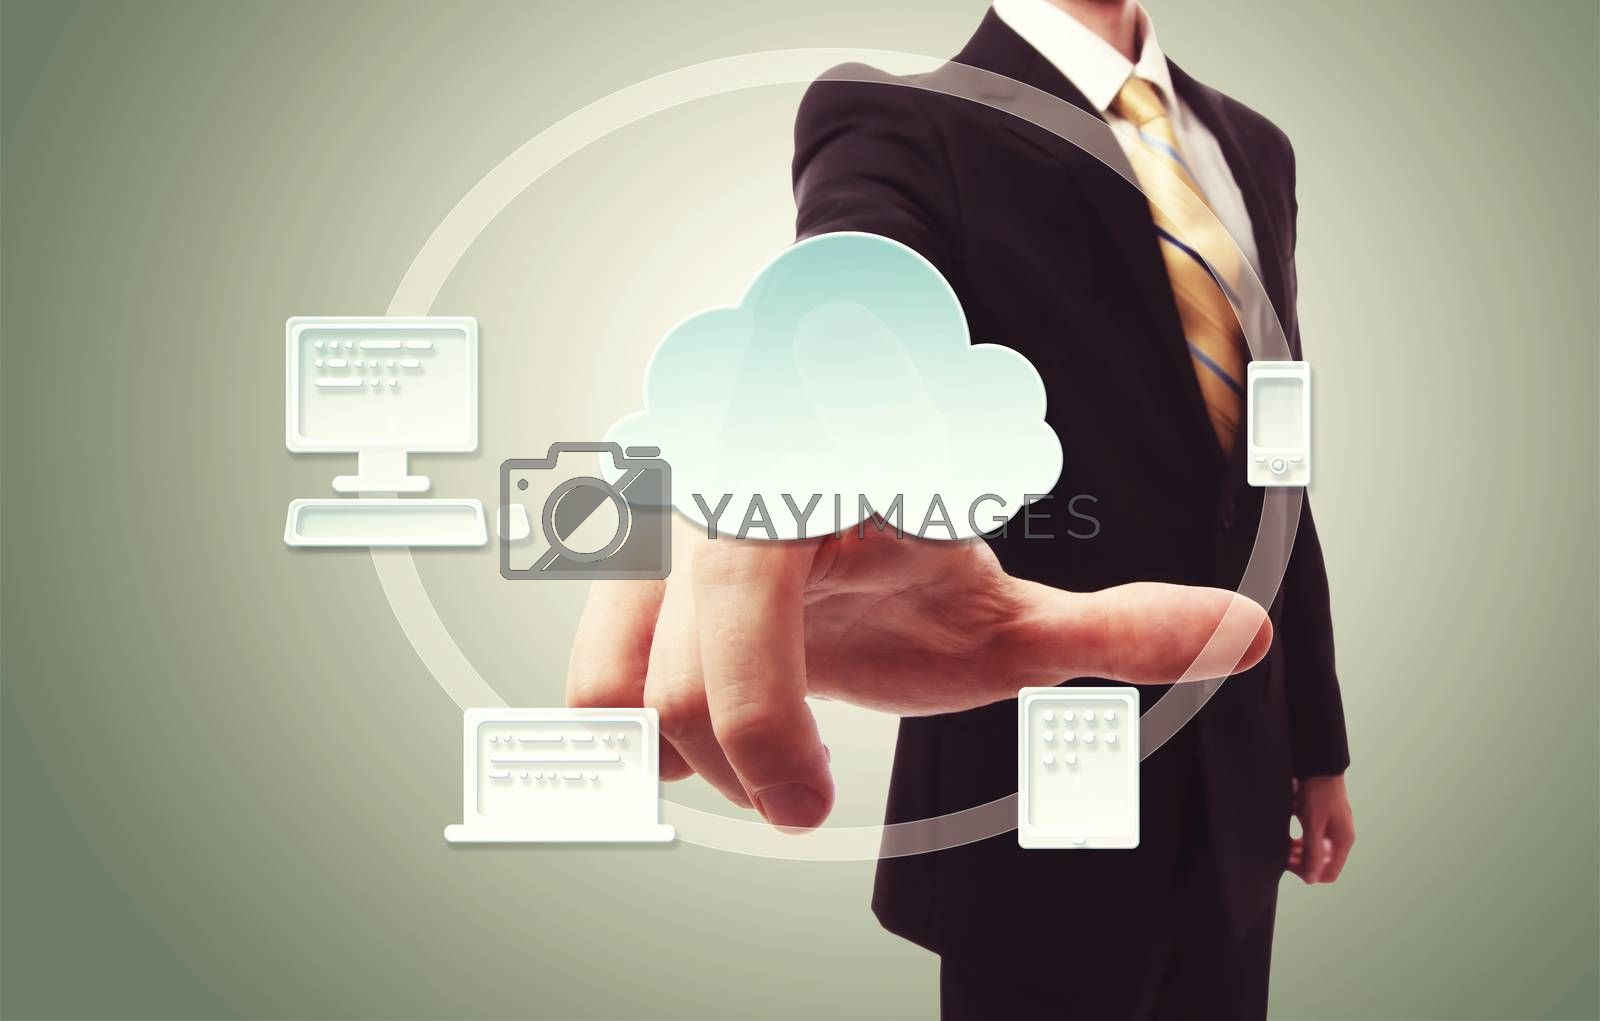 Royalty free image of Businessman pressing cloud icon by melpomene